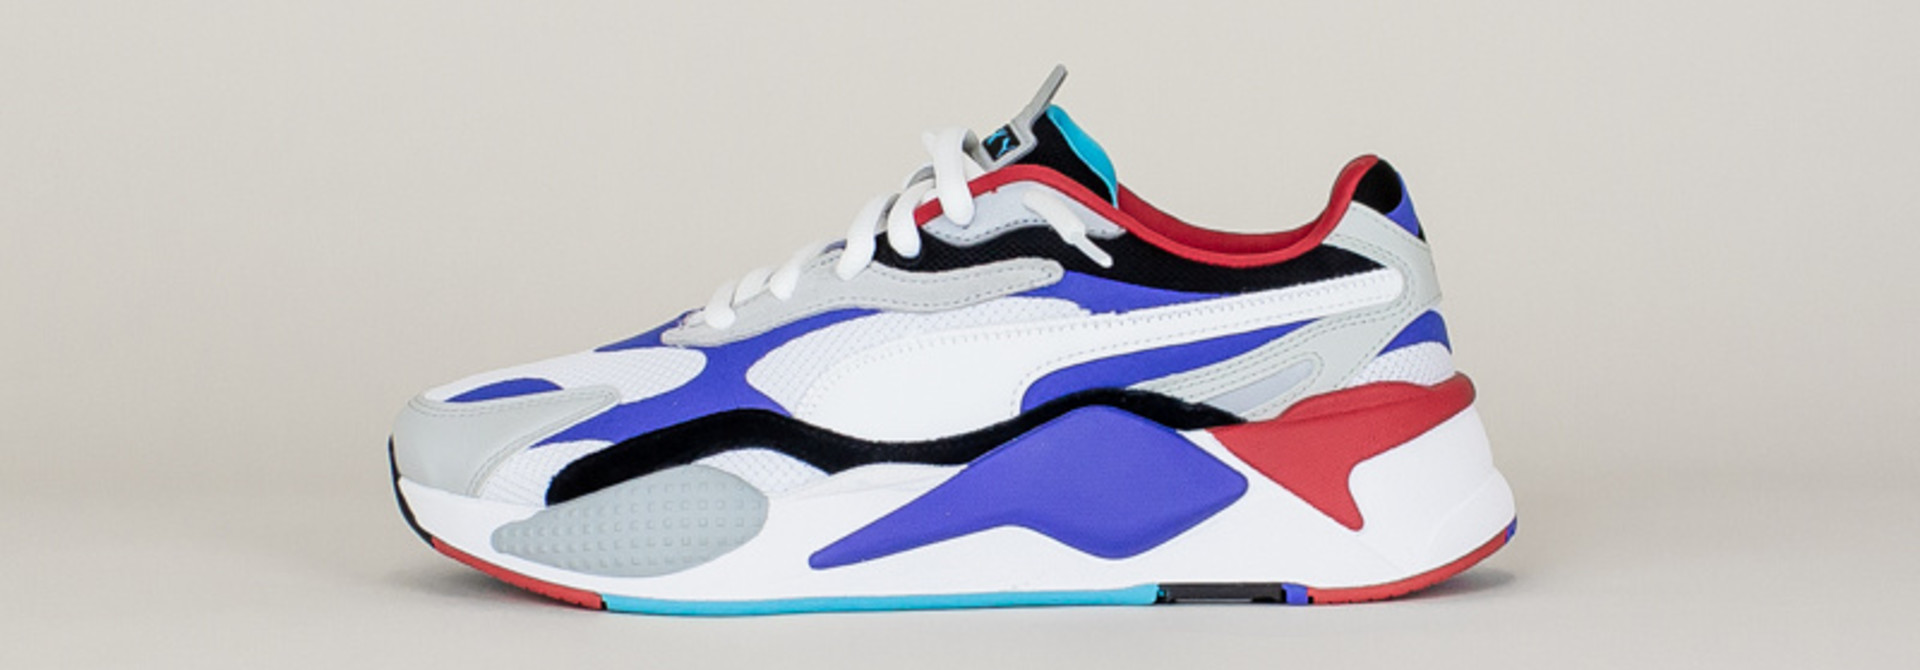 Puma RS-X3 Puzzle - White/Red/Blue